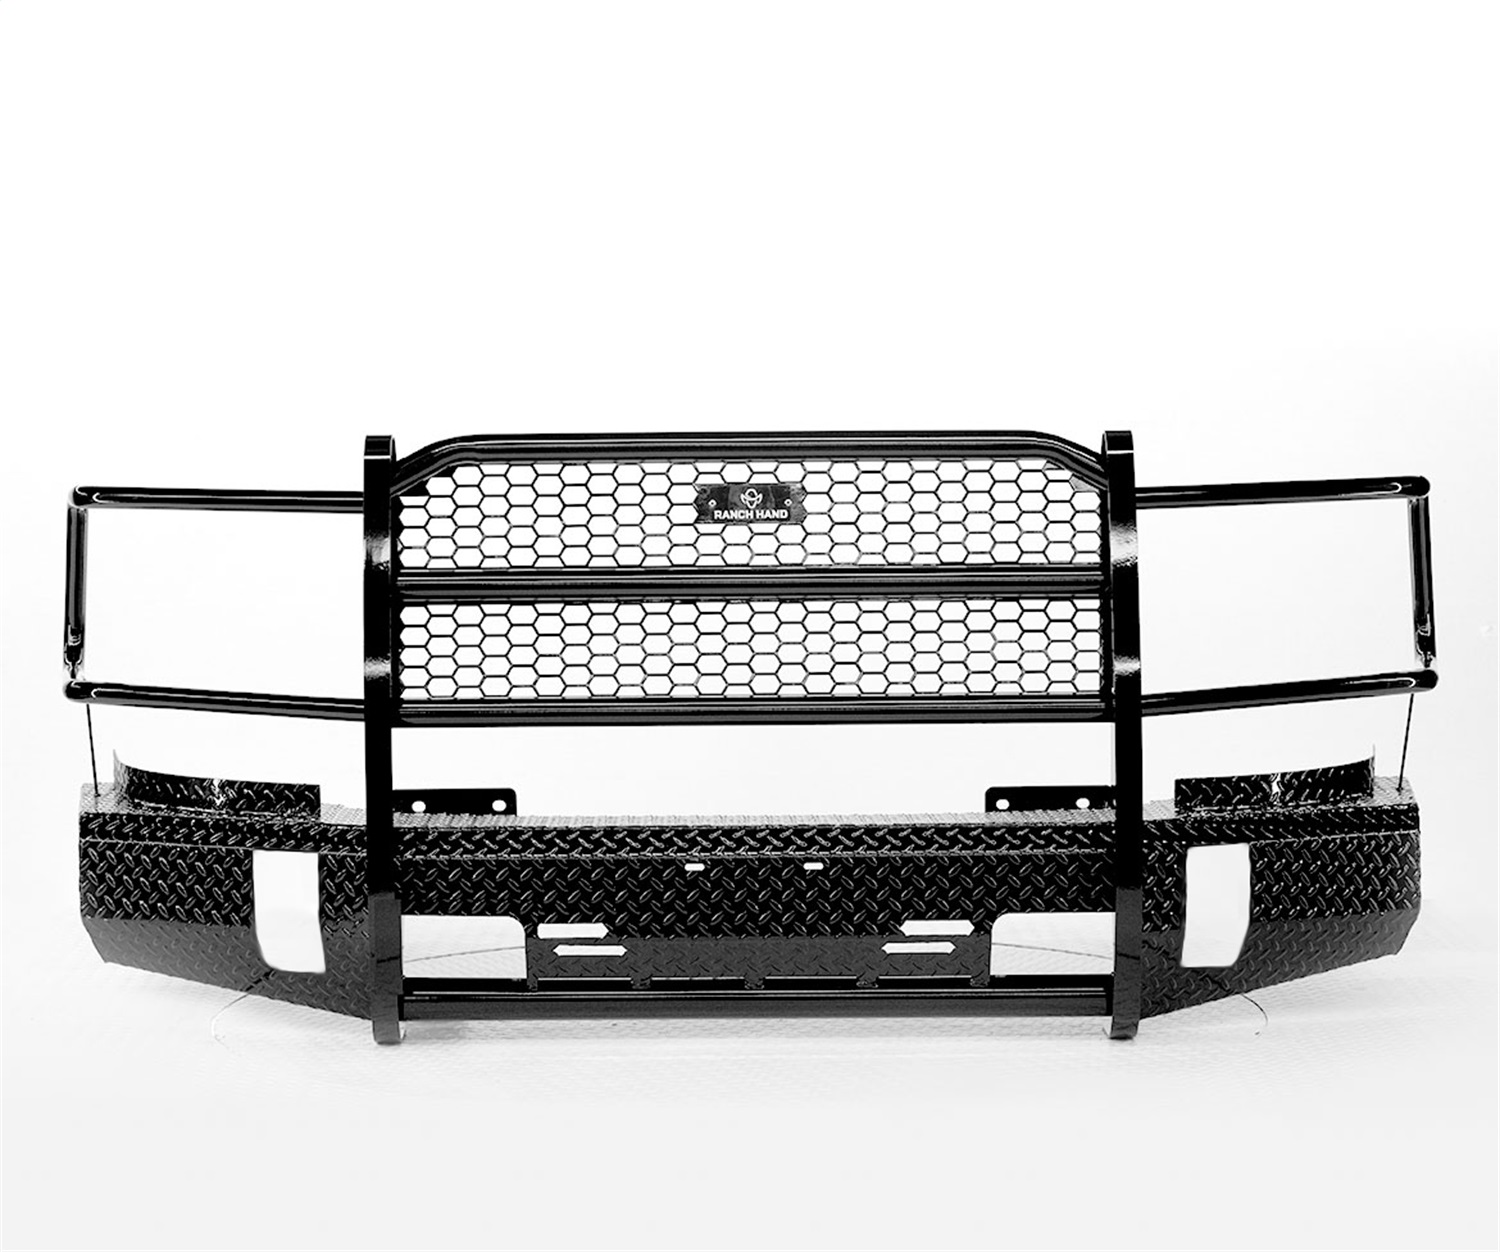 Summit Series Front Bumper, Retains Factory Tow Hook And Fog Lights